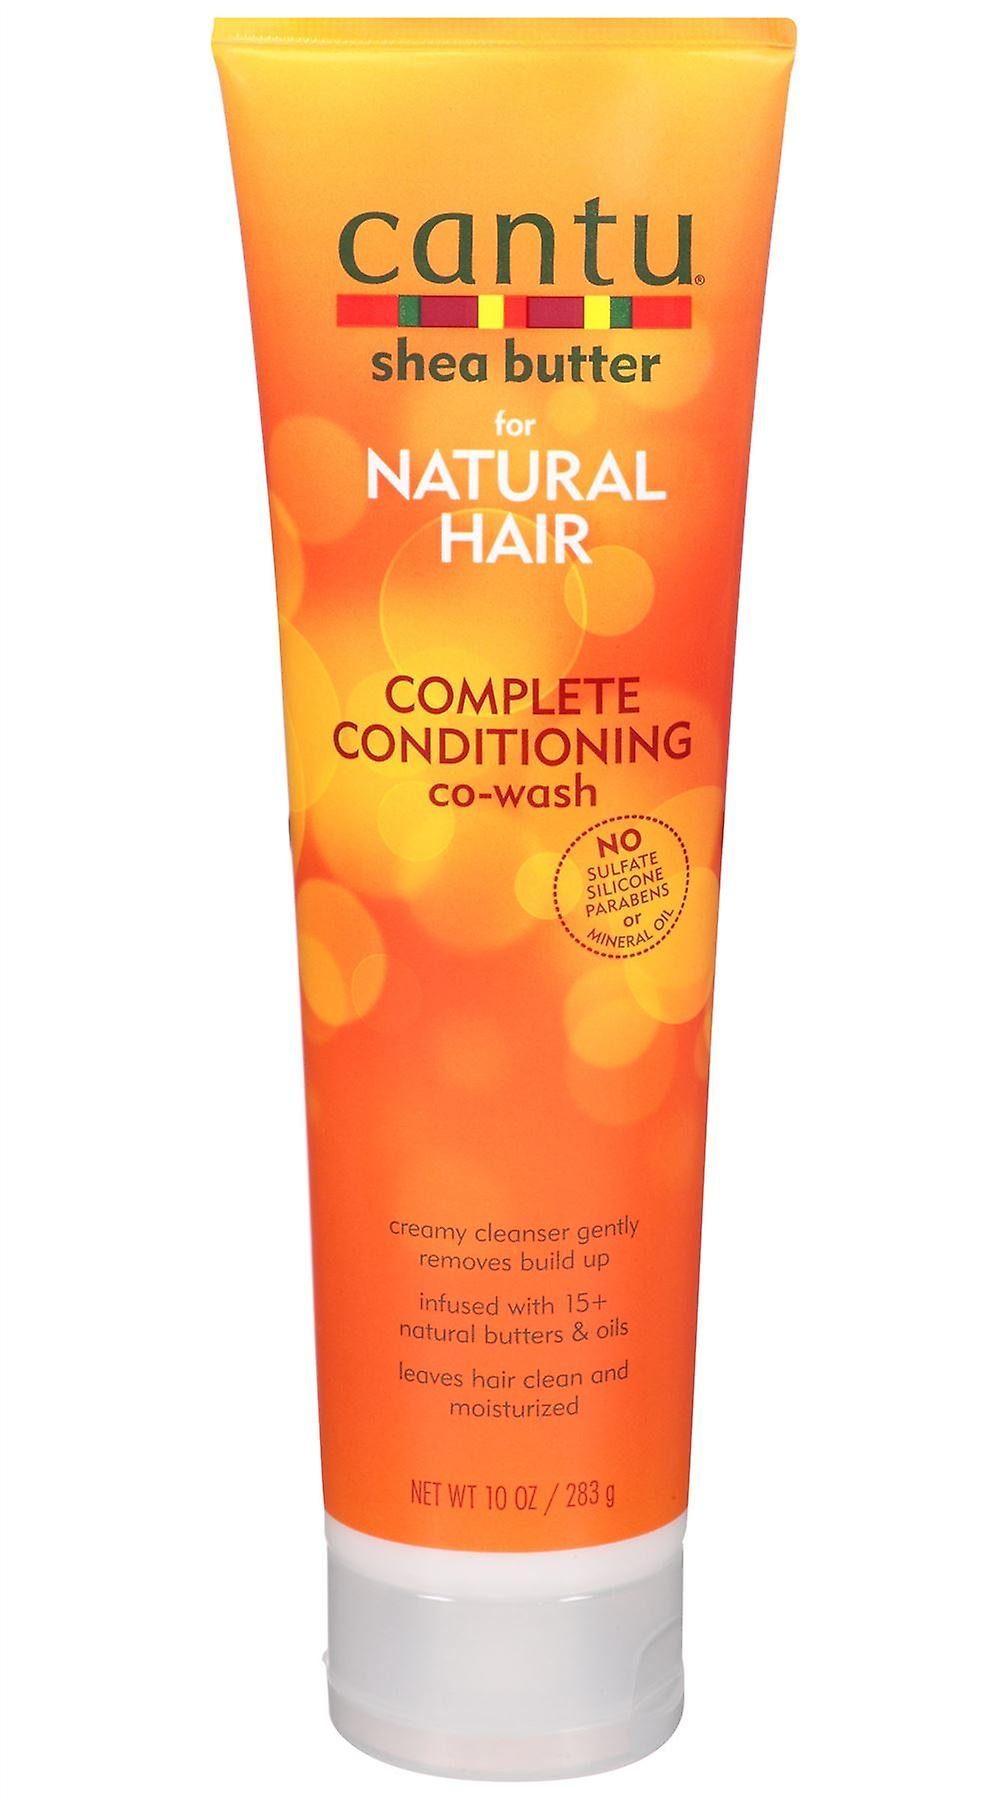 Cantu Shea Butter Complete Conditioning Co-Wash 283g